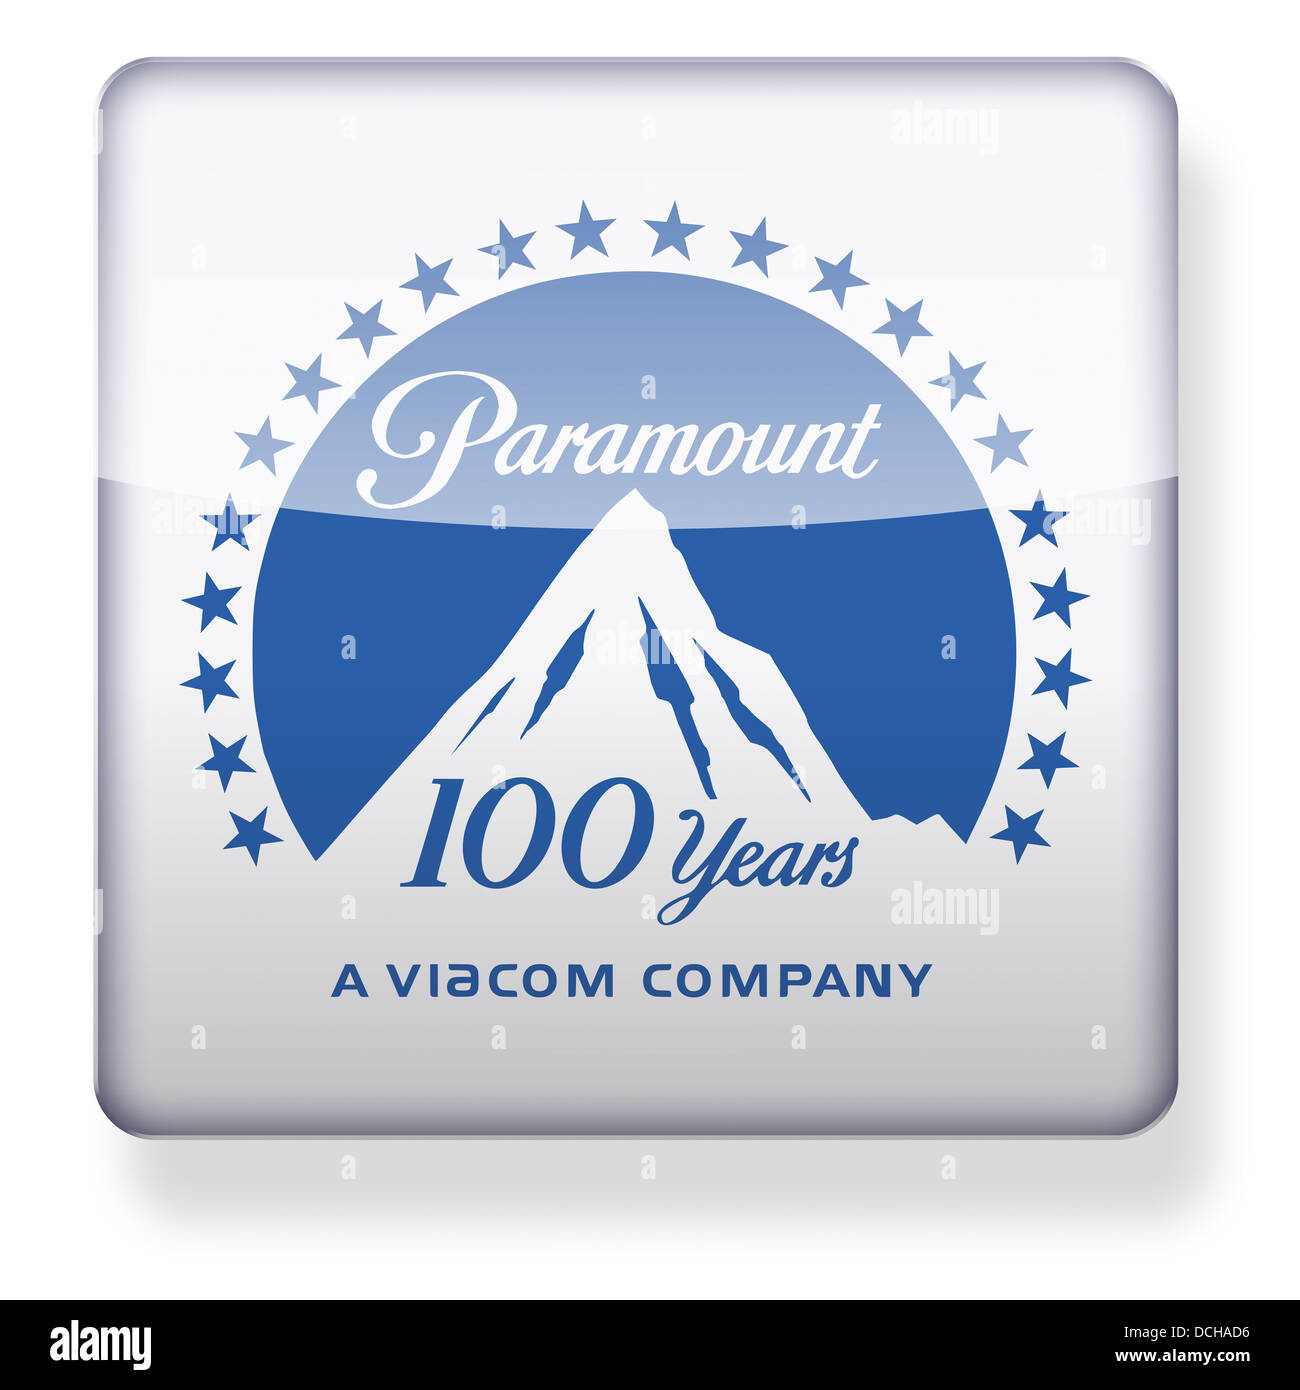 Paramount Pictures logo as an app icon  Clipping path